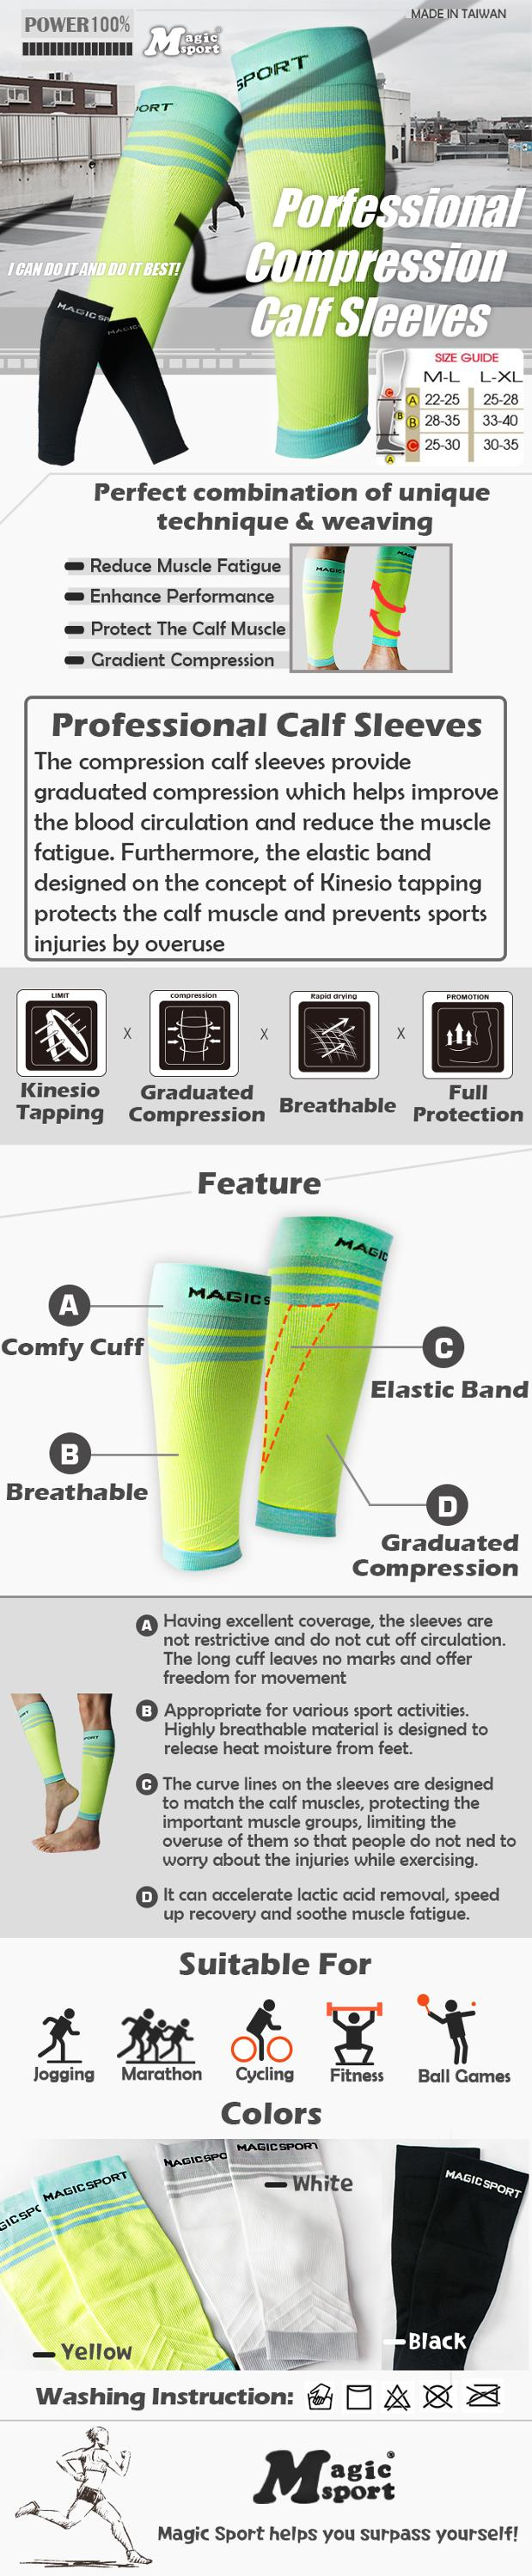 Hot sale New Professional Compression Calf Sleeves